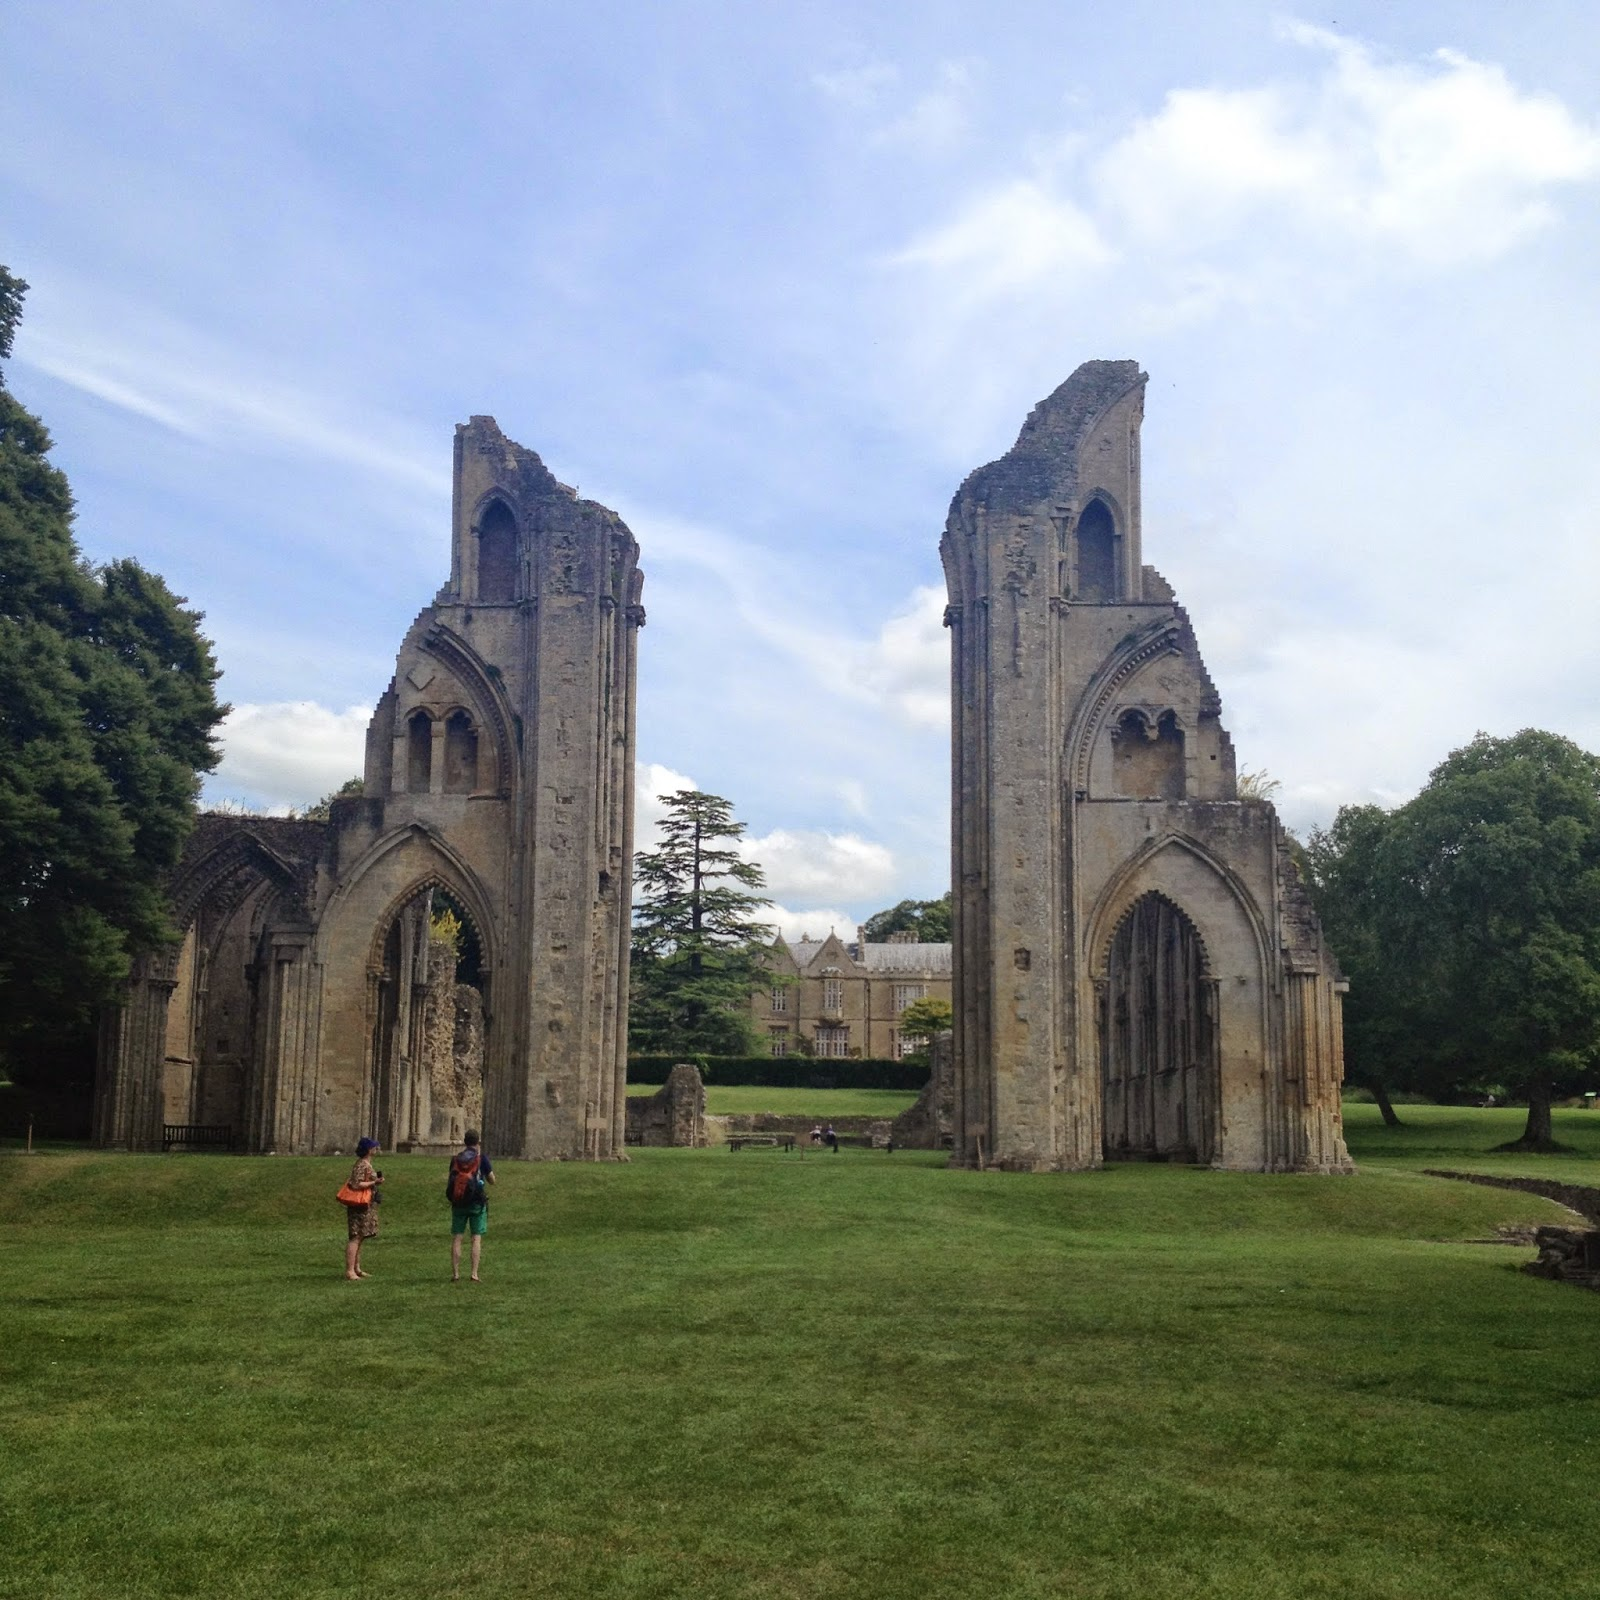 Glastonbury Abbey (photo credit: http://researchandramblings.blogspot.com/)